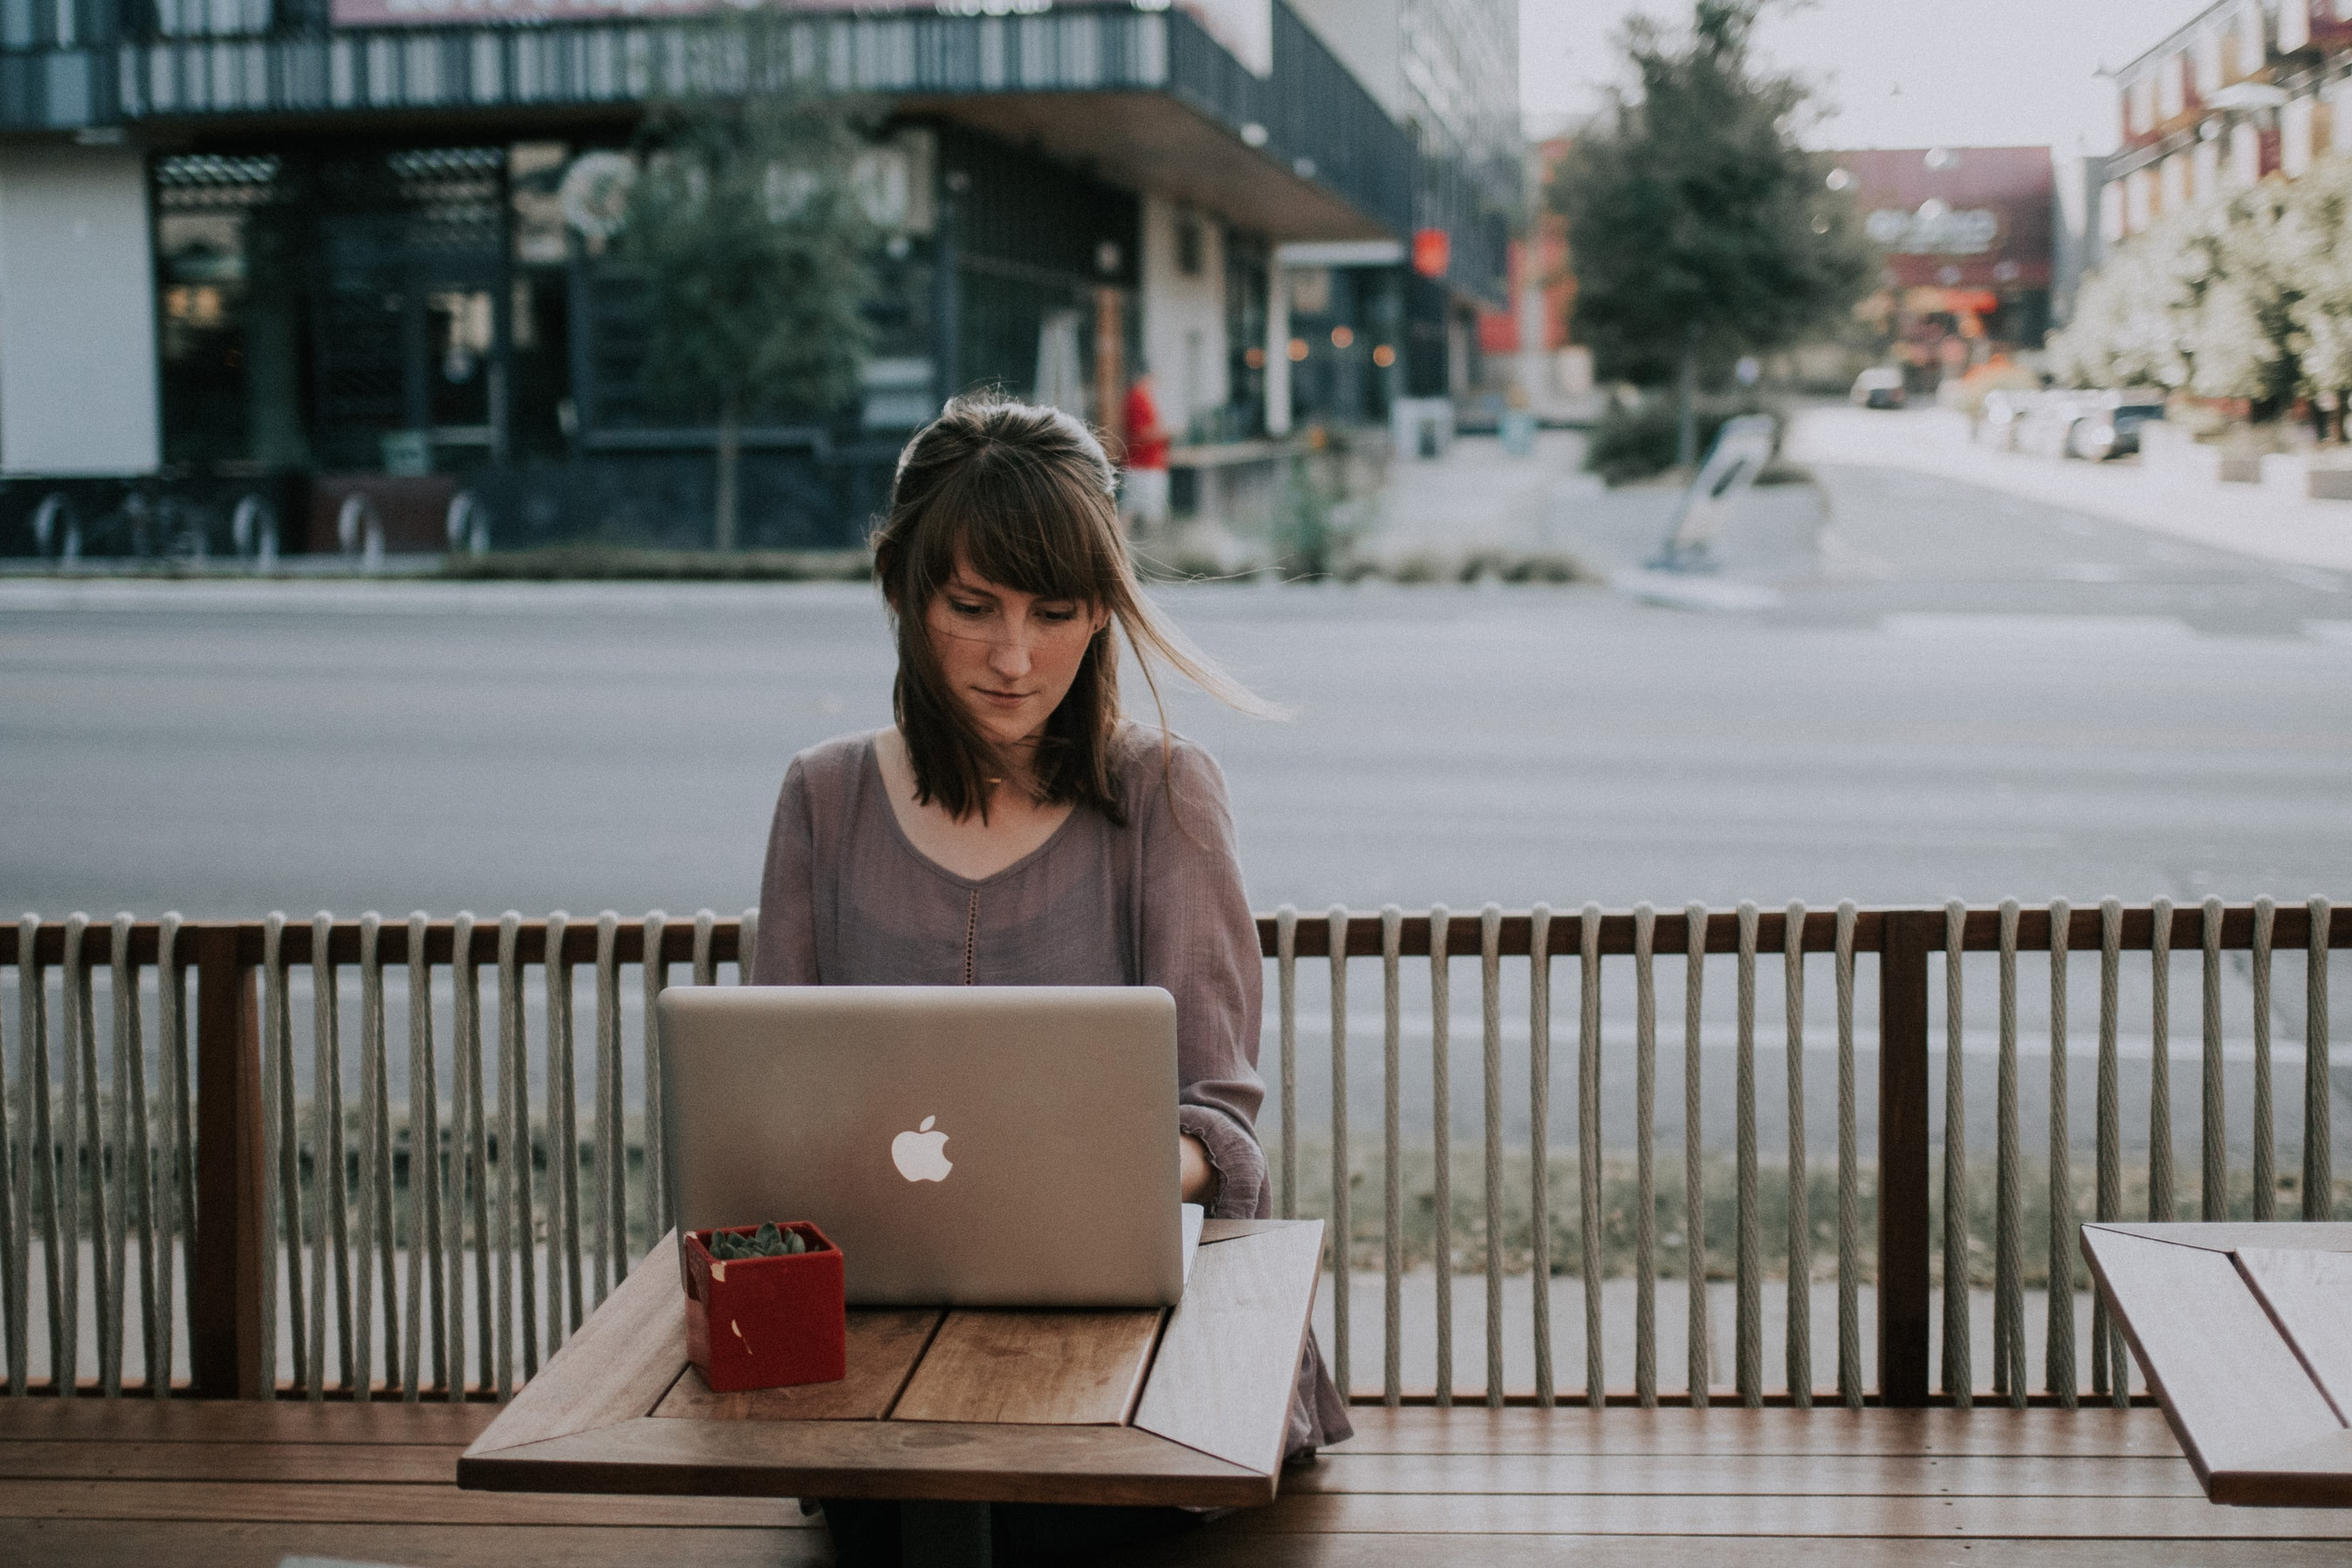 a woman who is working remotely on a macbook outside a coffeeshop